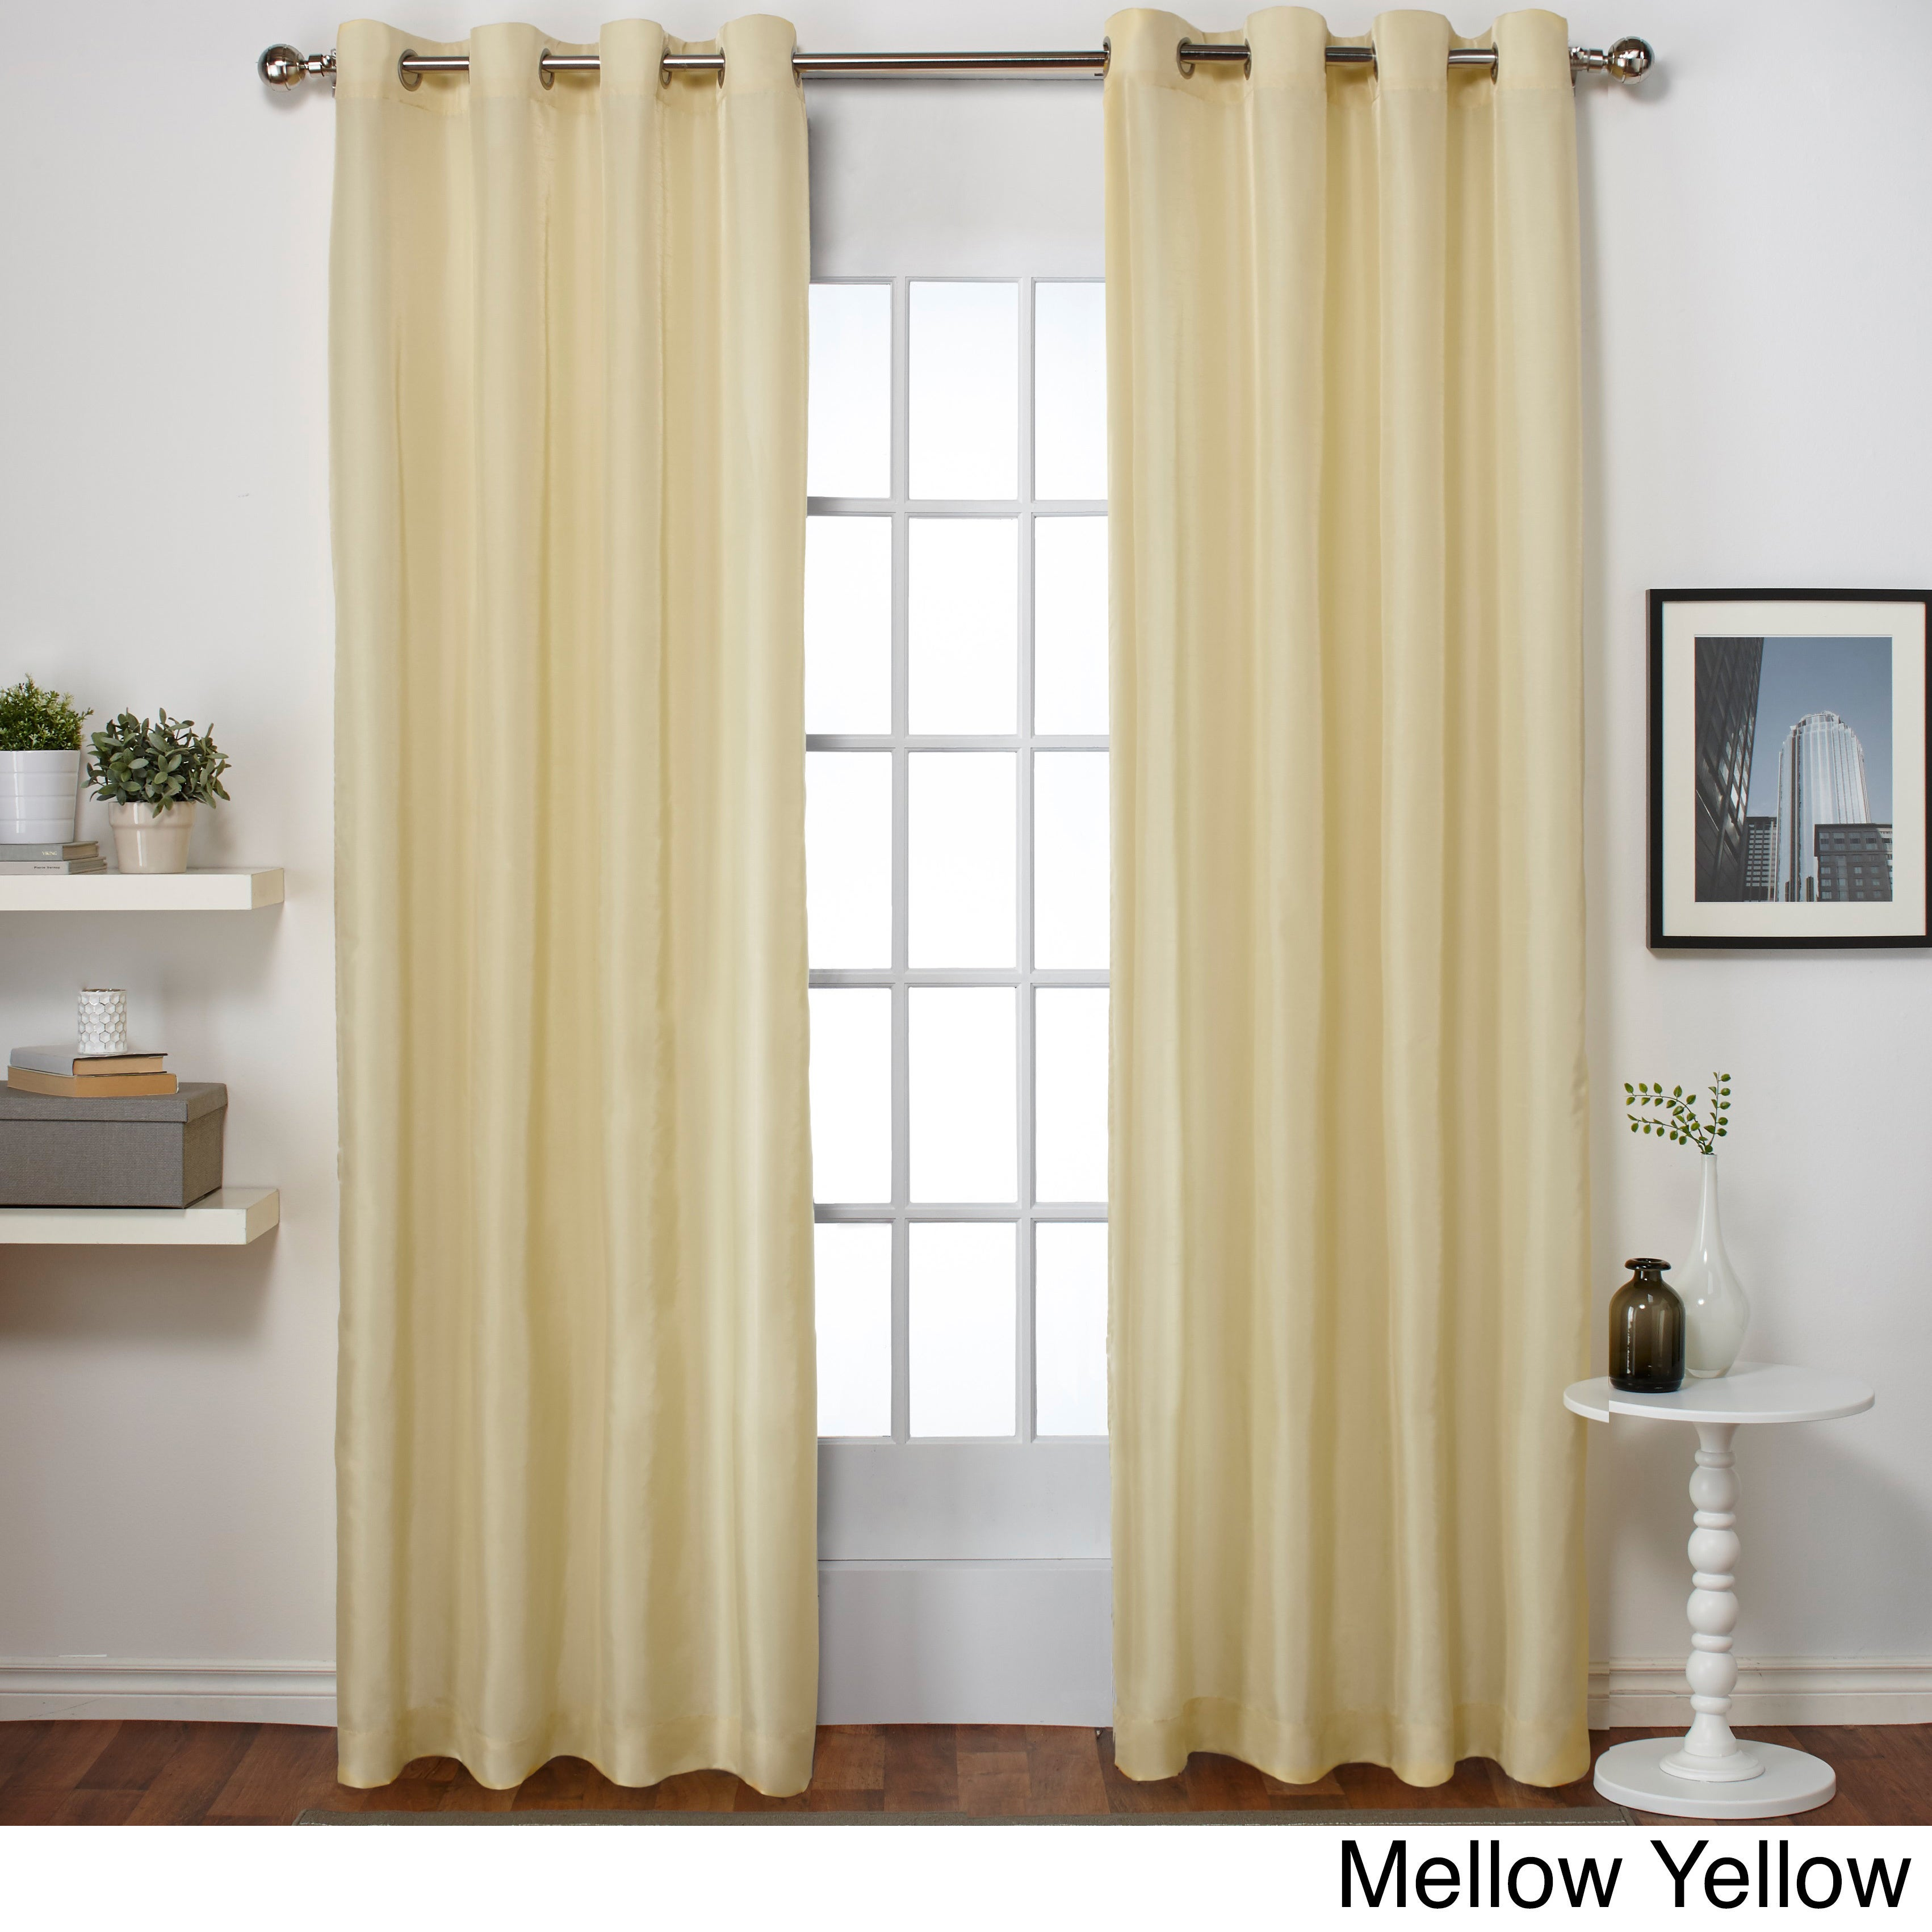 drapes faux door panel blackout decor eyelet curtain silk window drape home itm bedroom